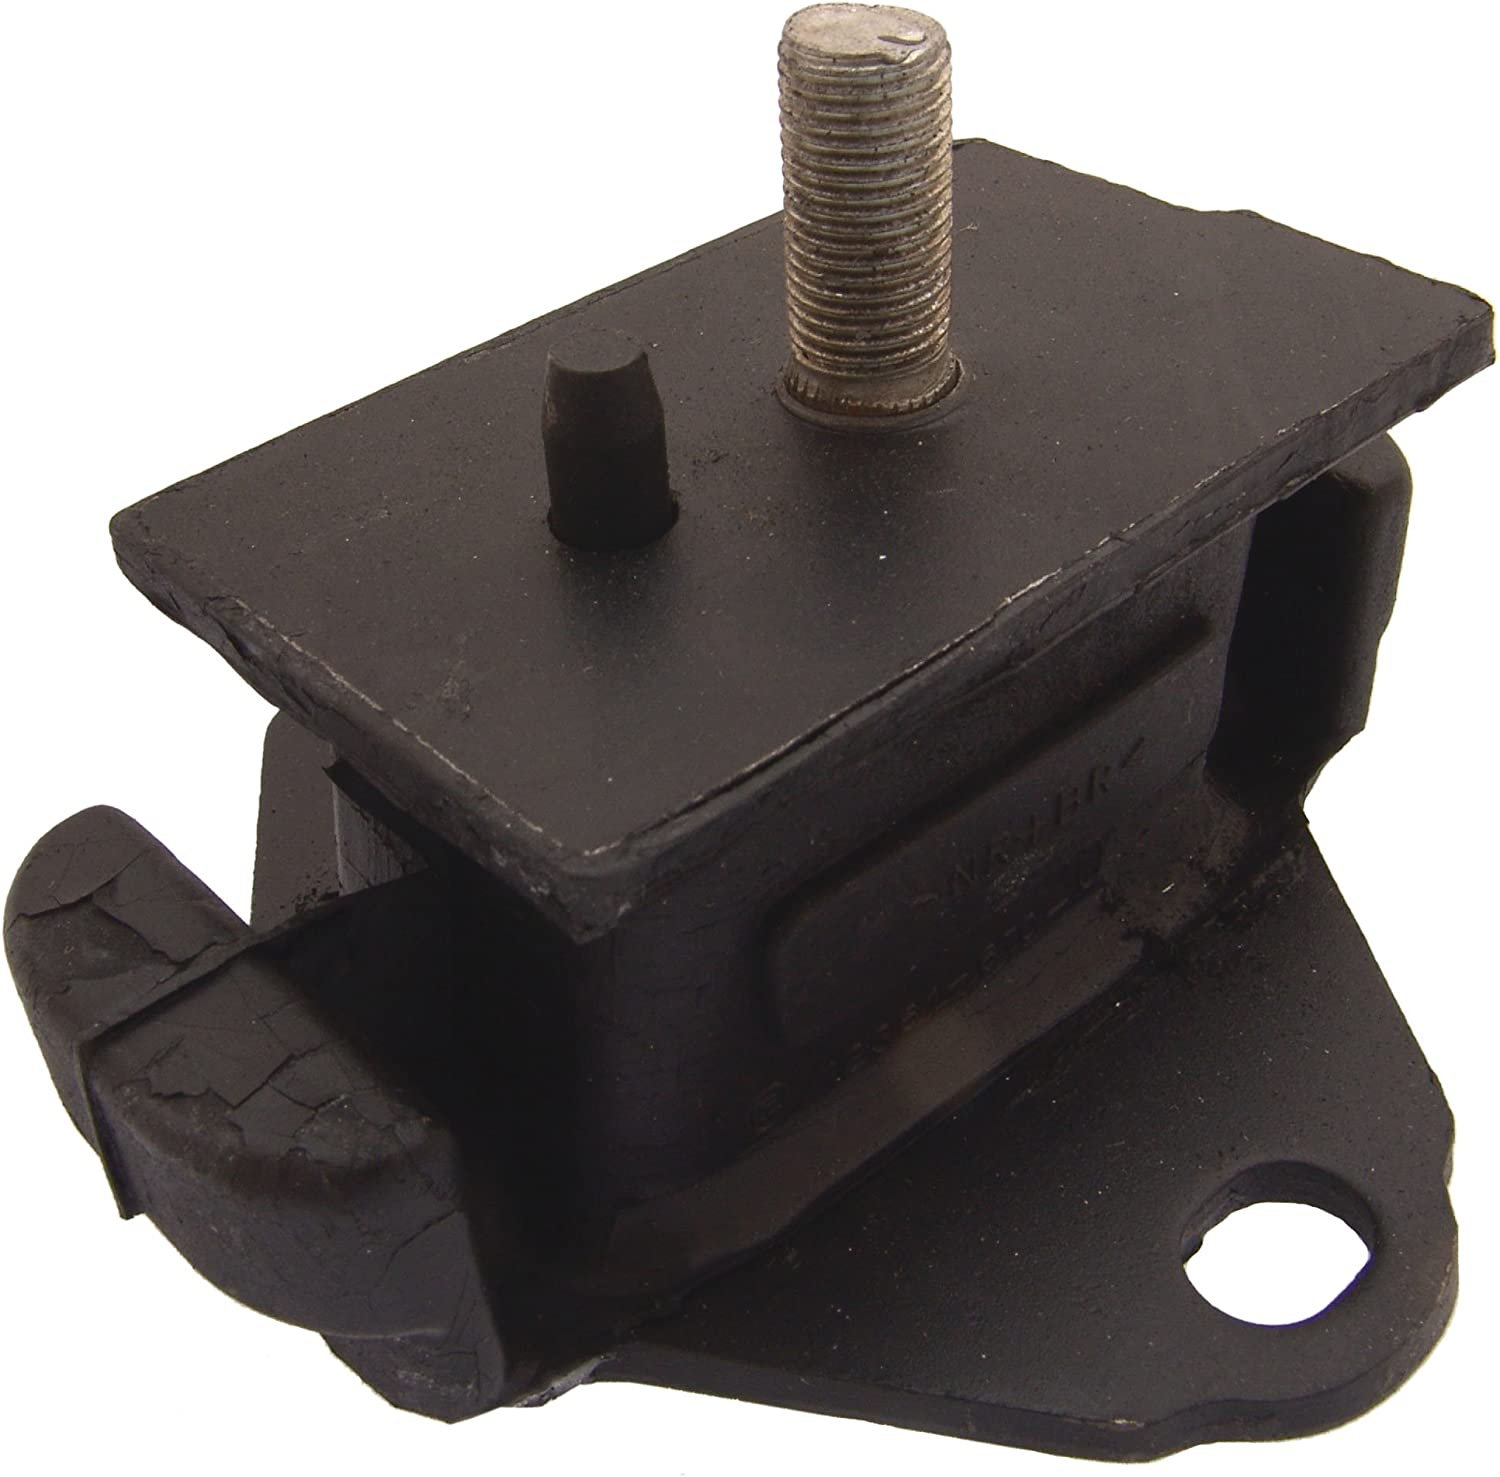 Sale Special Price 1236130090 - Front Engine Febest Toyota Austin Mall For Mount